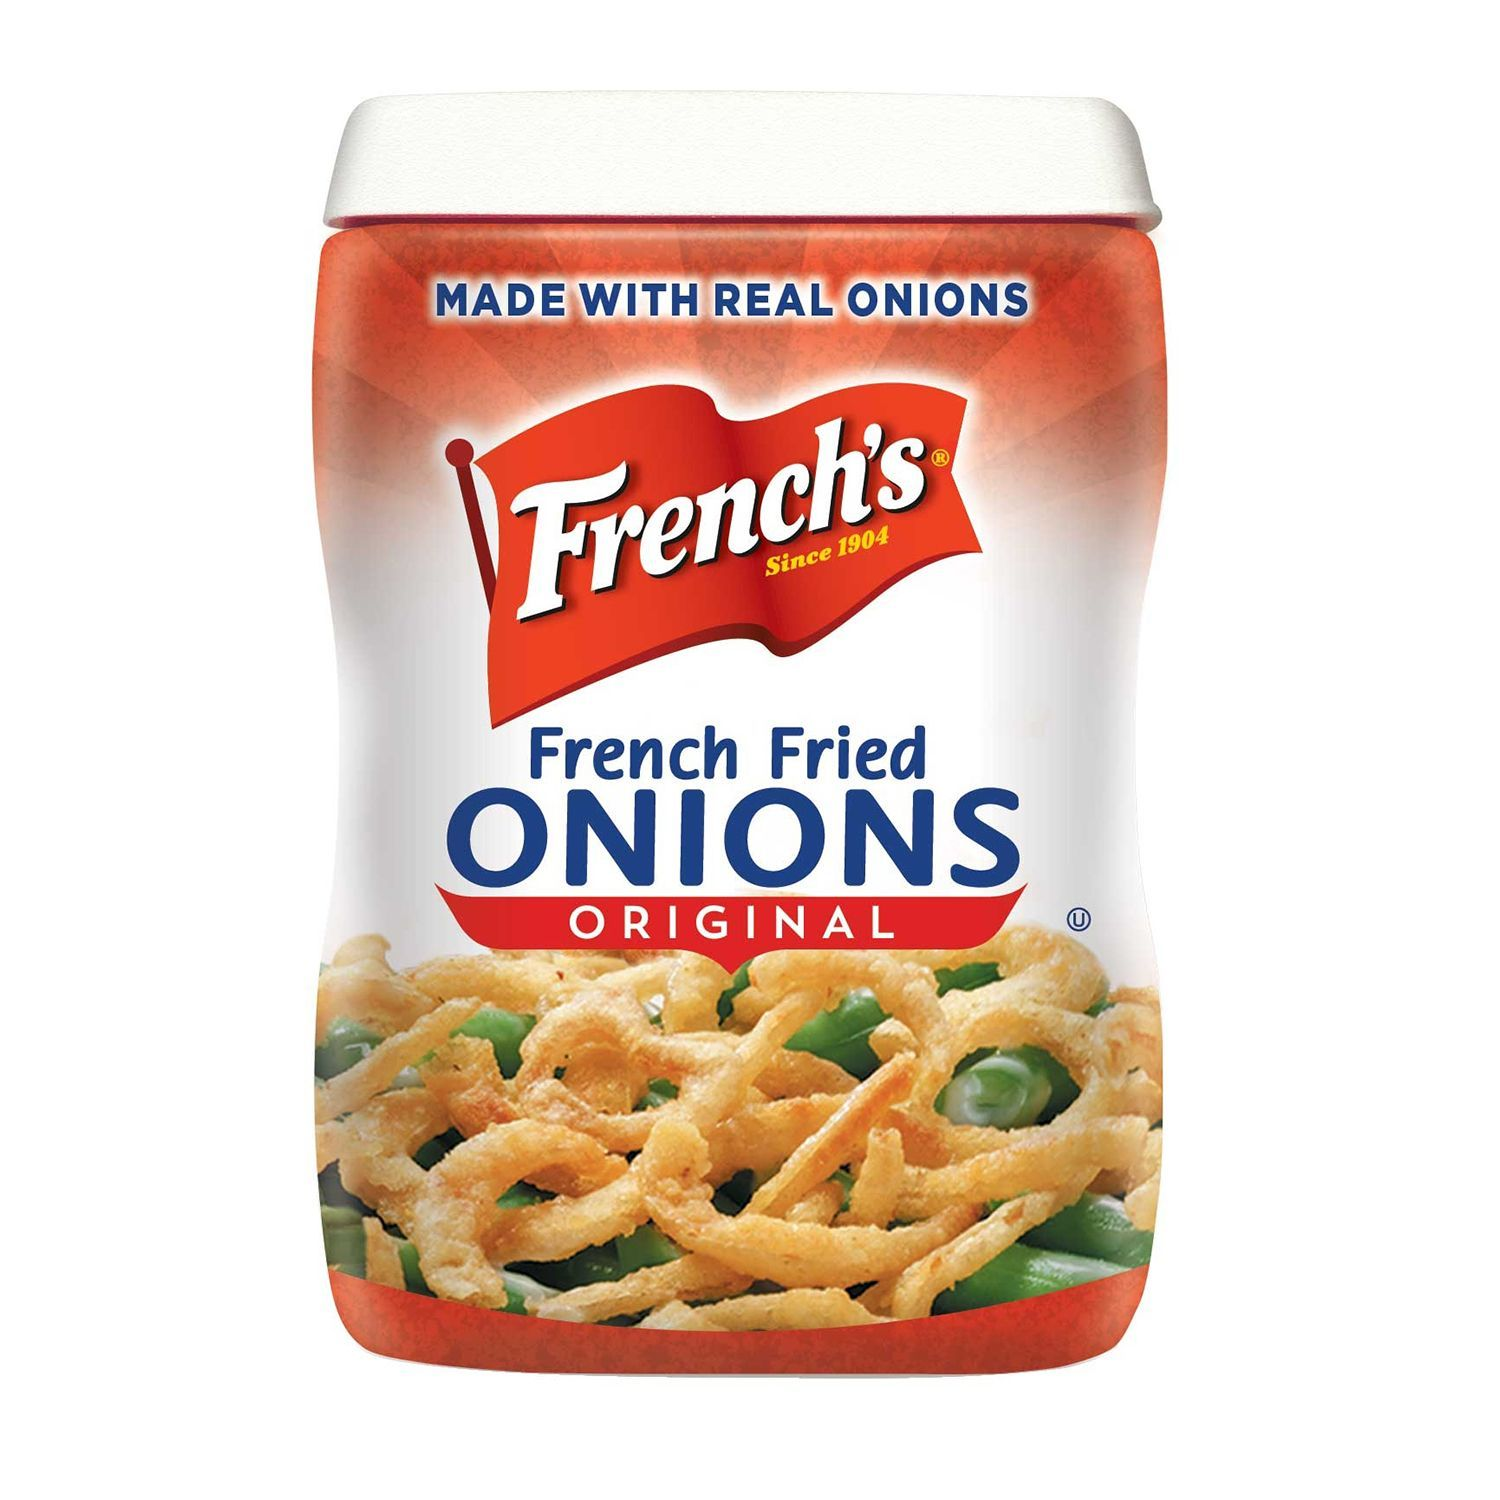 French S French Fried Onions Original 1 5 Lbs French Fried Onions Fried Onions Food